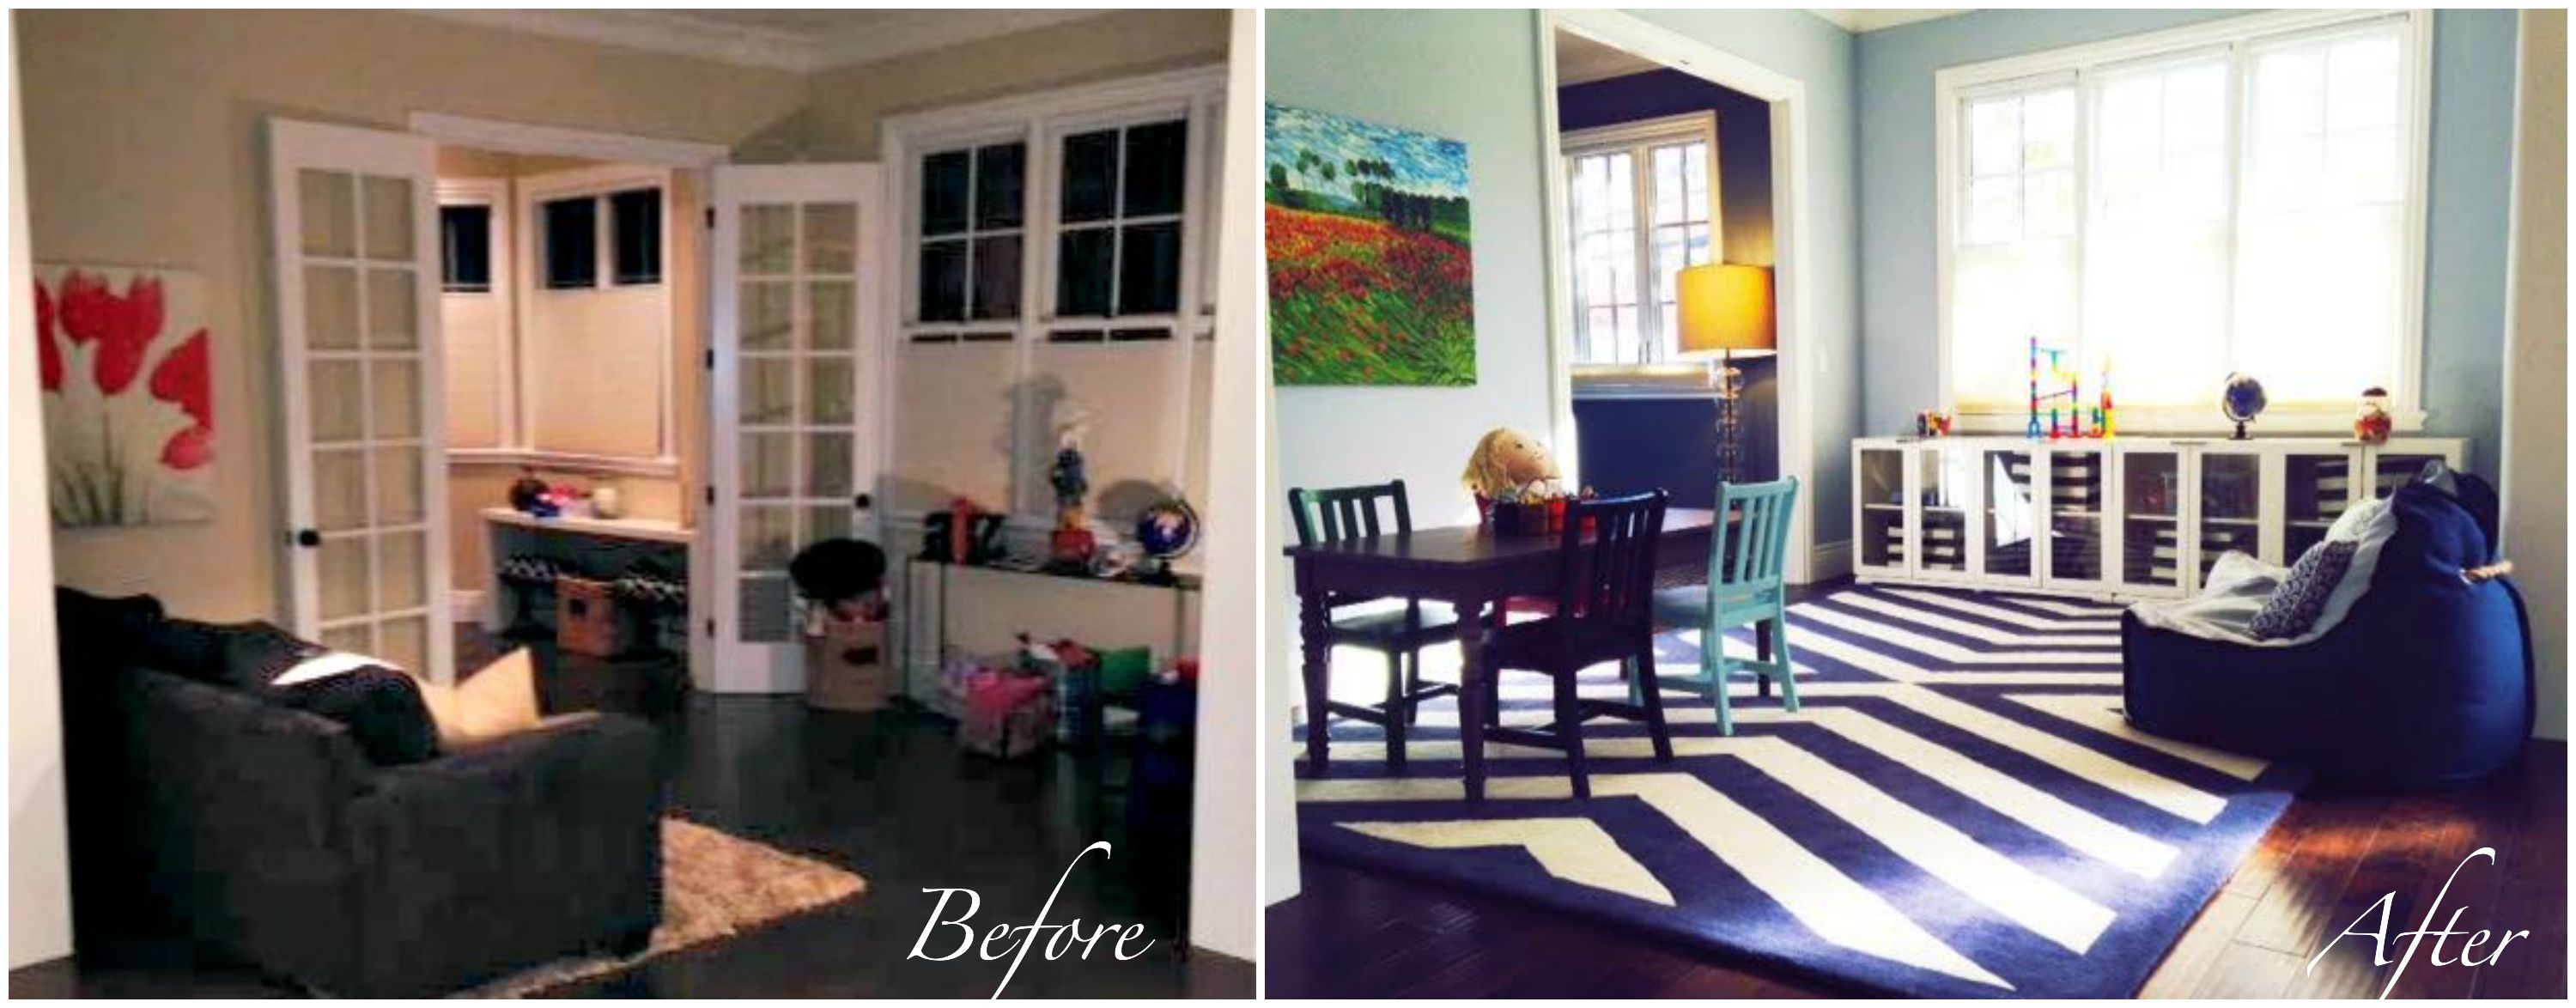 Before & After Playroom